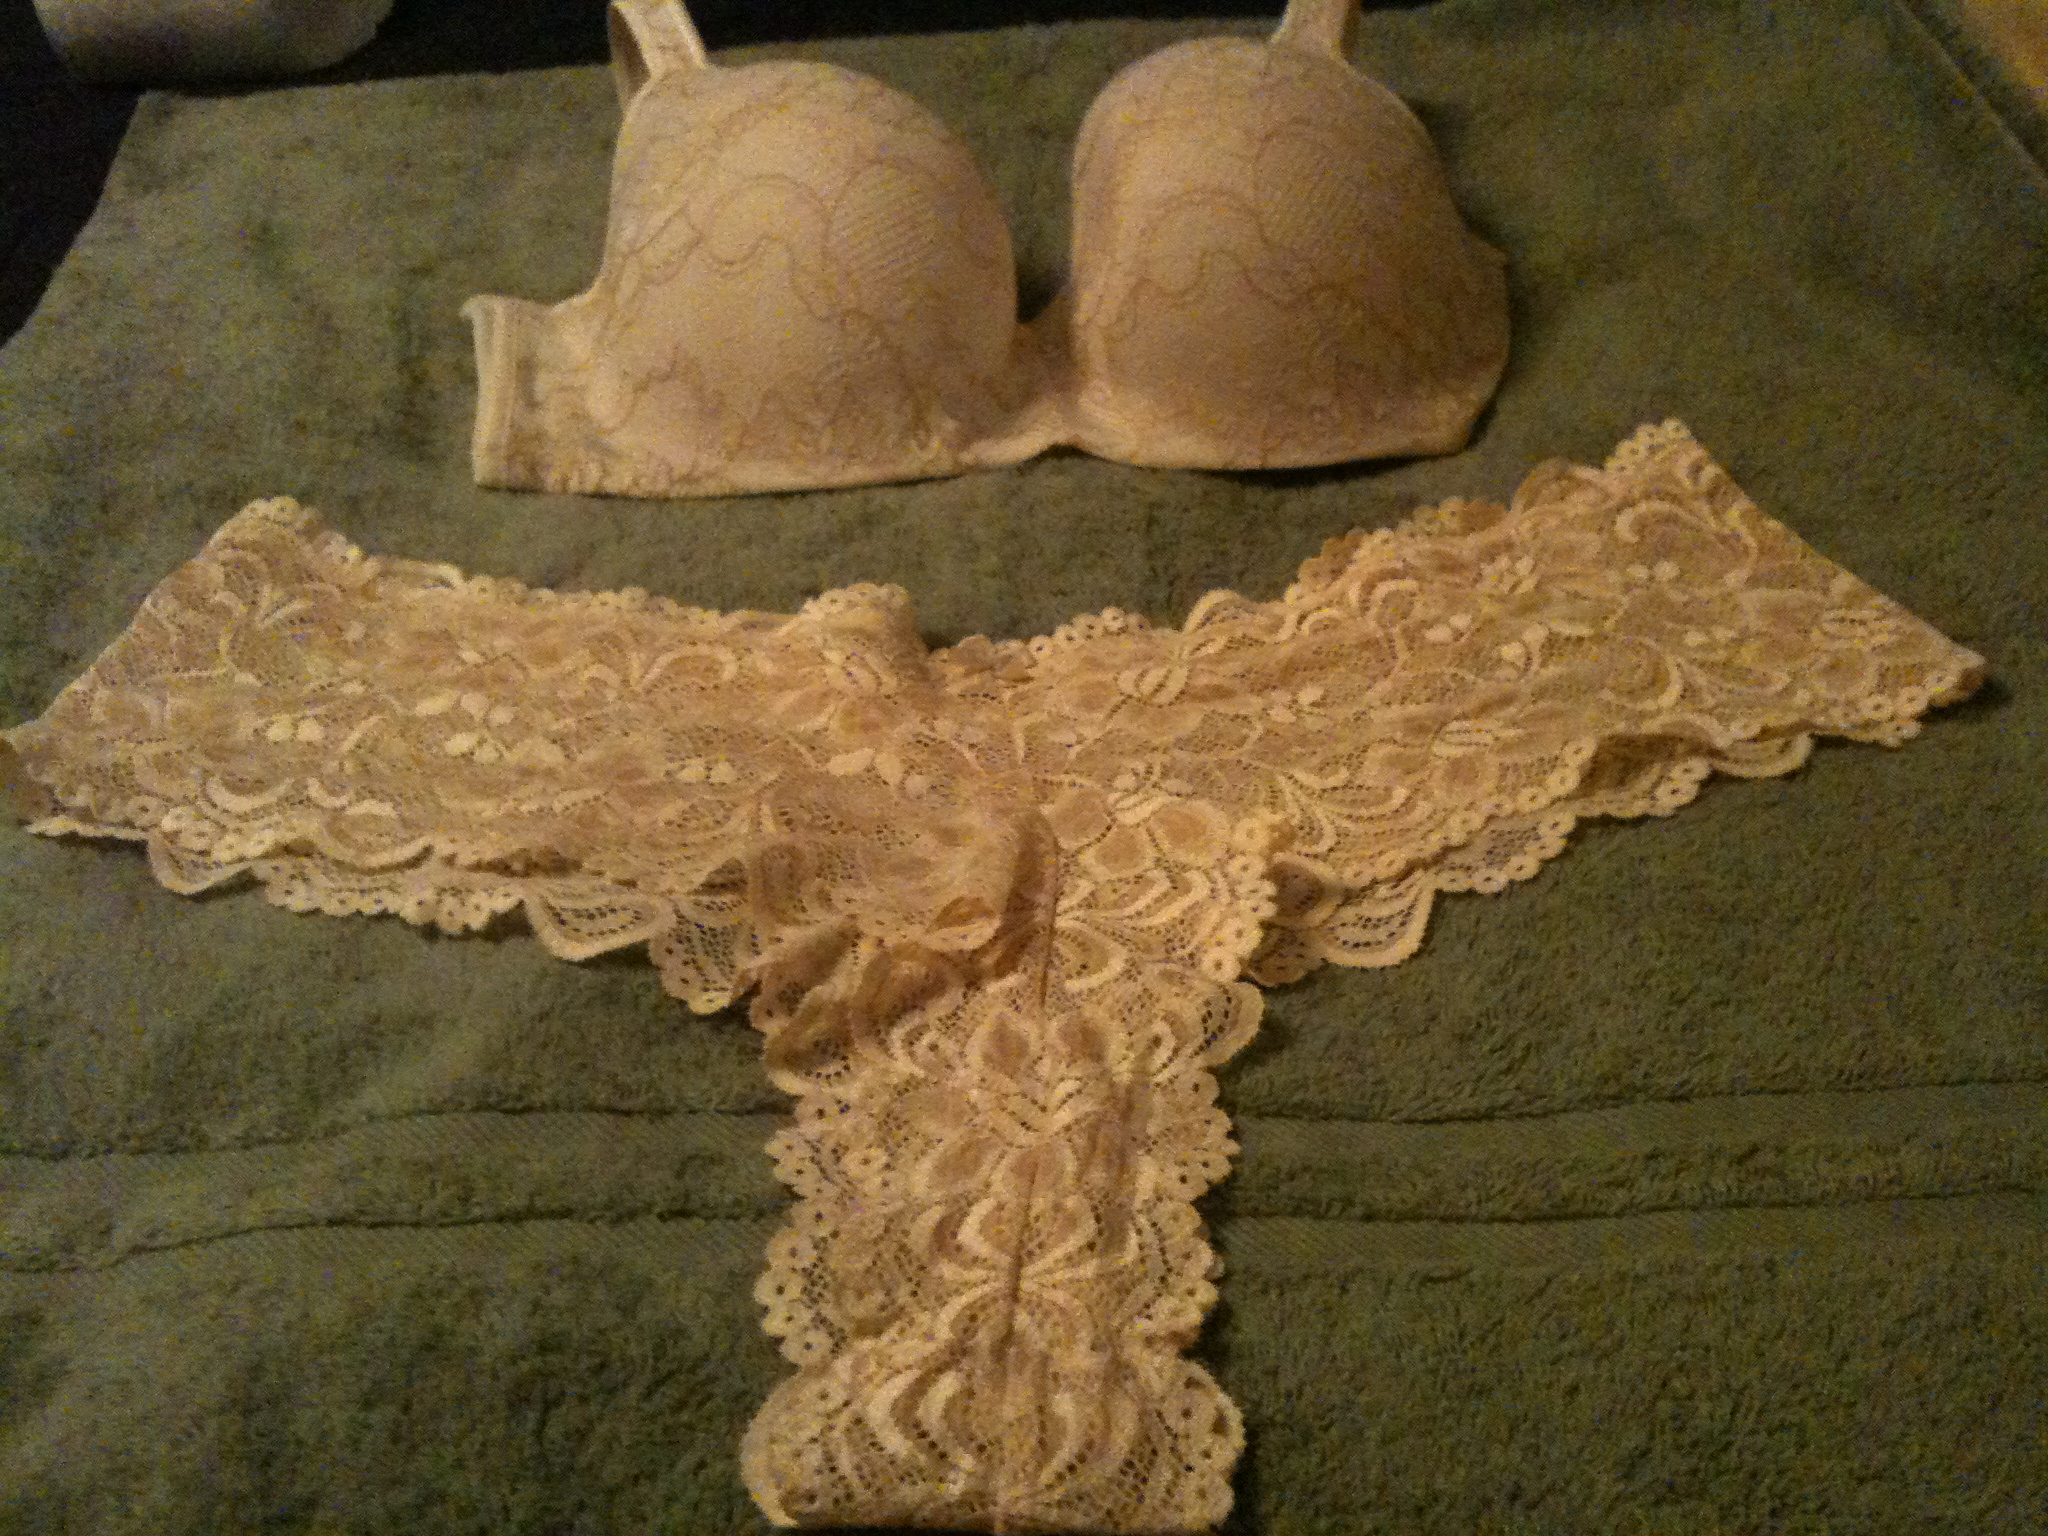 Beige lace bra and lace tanga panties by Cacique